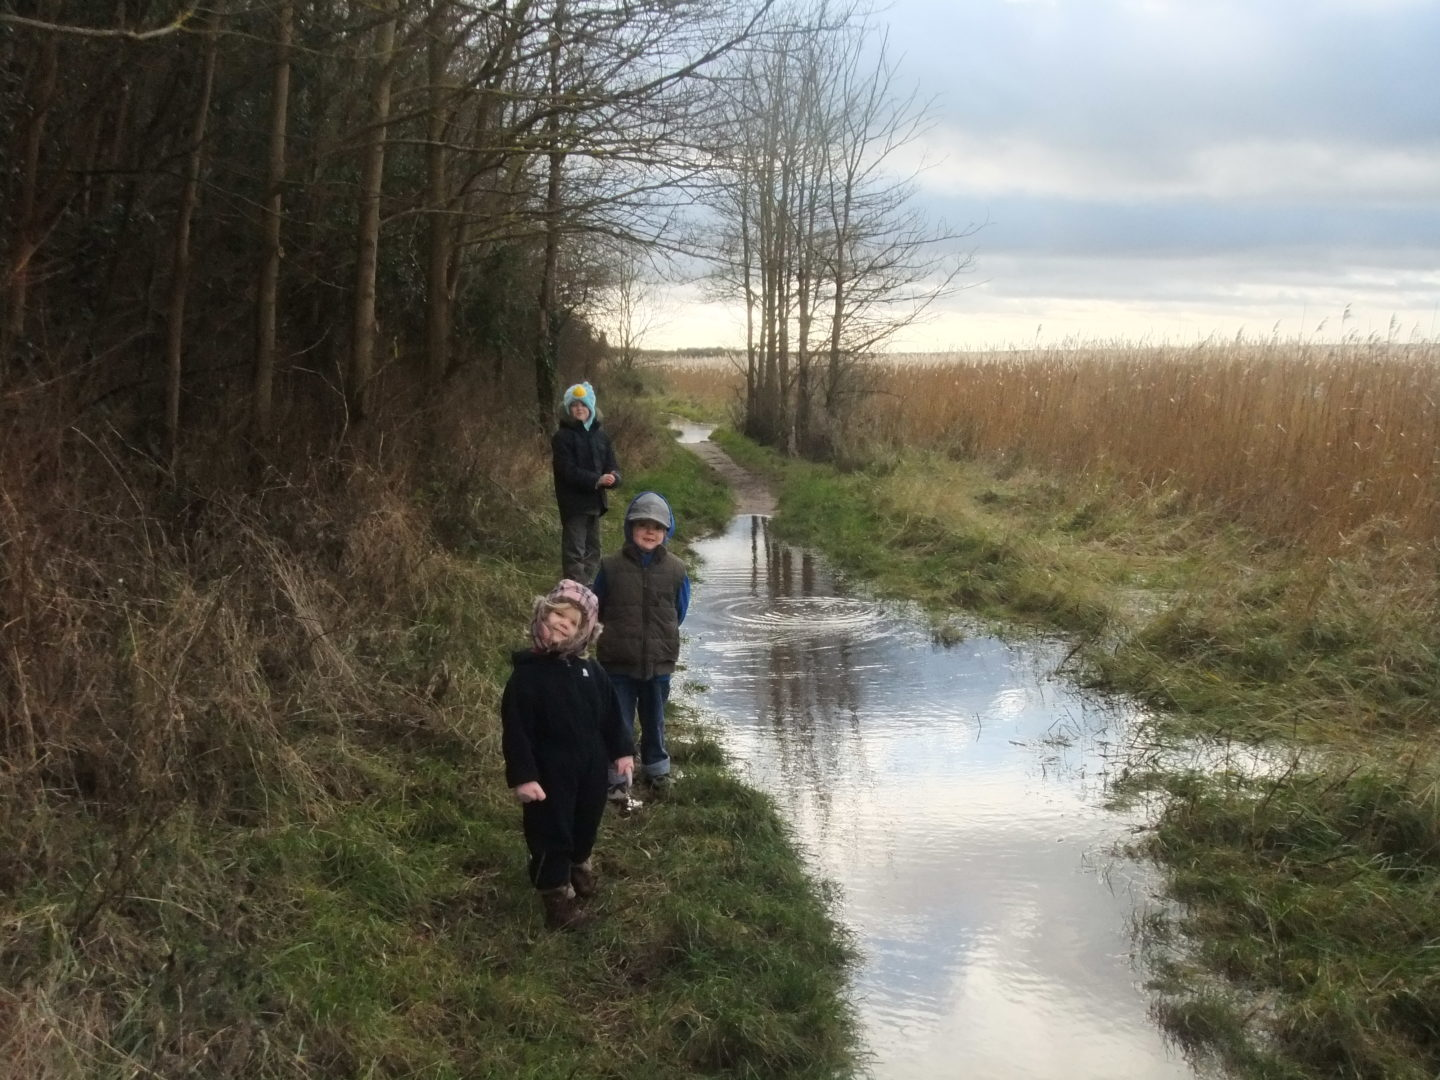 Eowyn, Kaide and Lochlan navigating puddles on a wet woodland walk